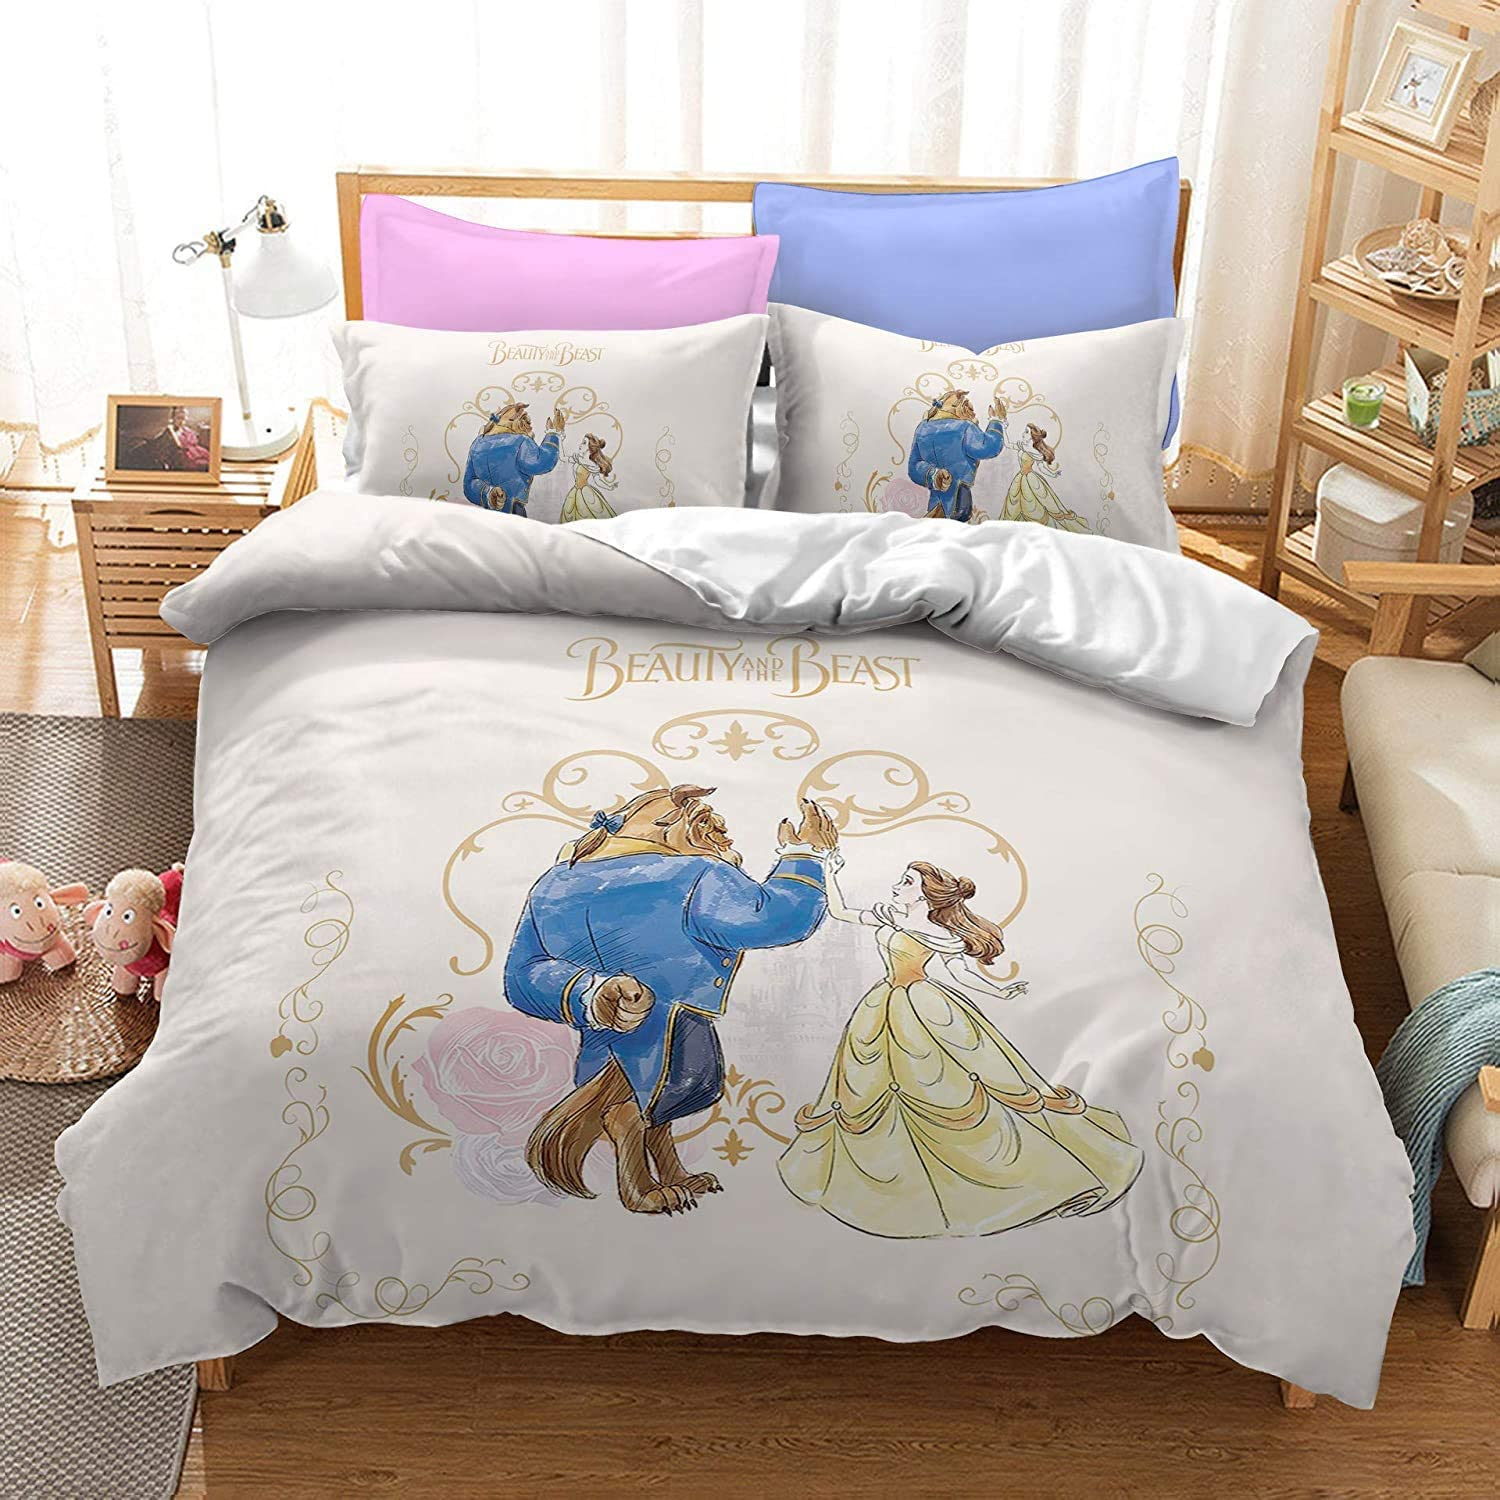 Beauty and Ranking TOP4 Beast Bedding Set King All items free shipping Comforter Duvet Cover Pil with